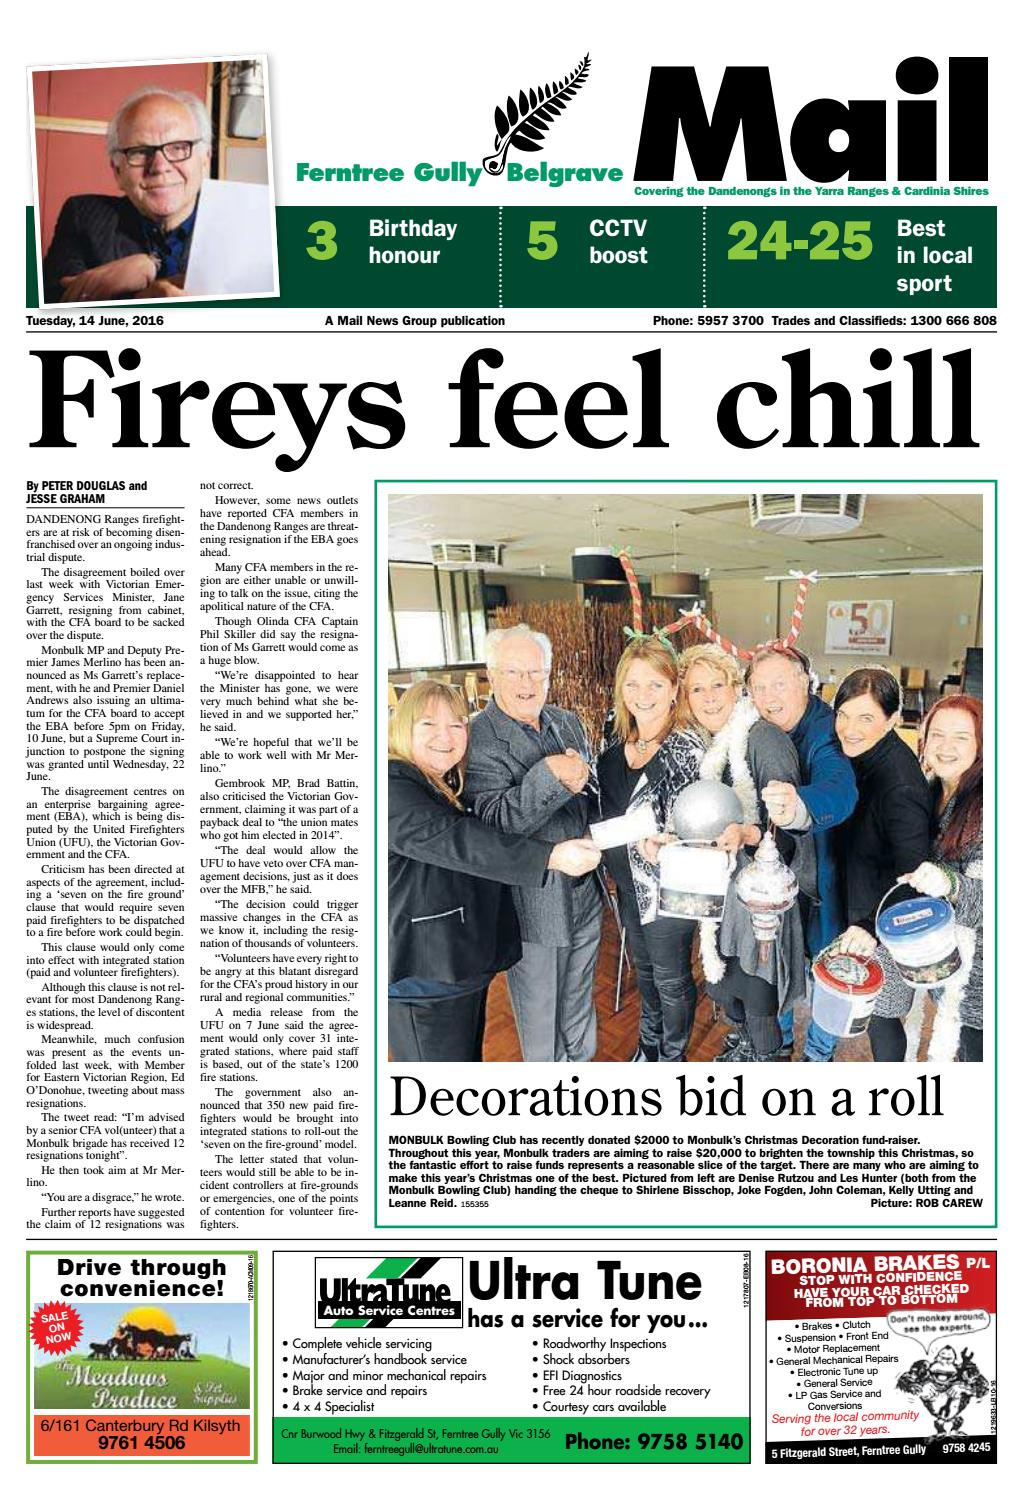 Mail - Ferntree Gully Mail - 14th June 2016 by Star News Group - issuu